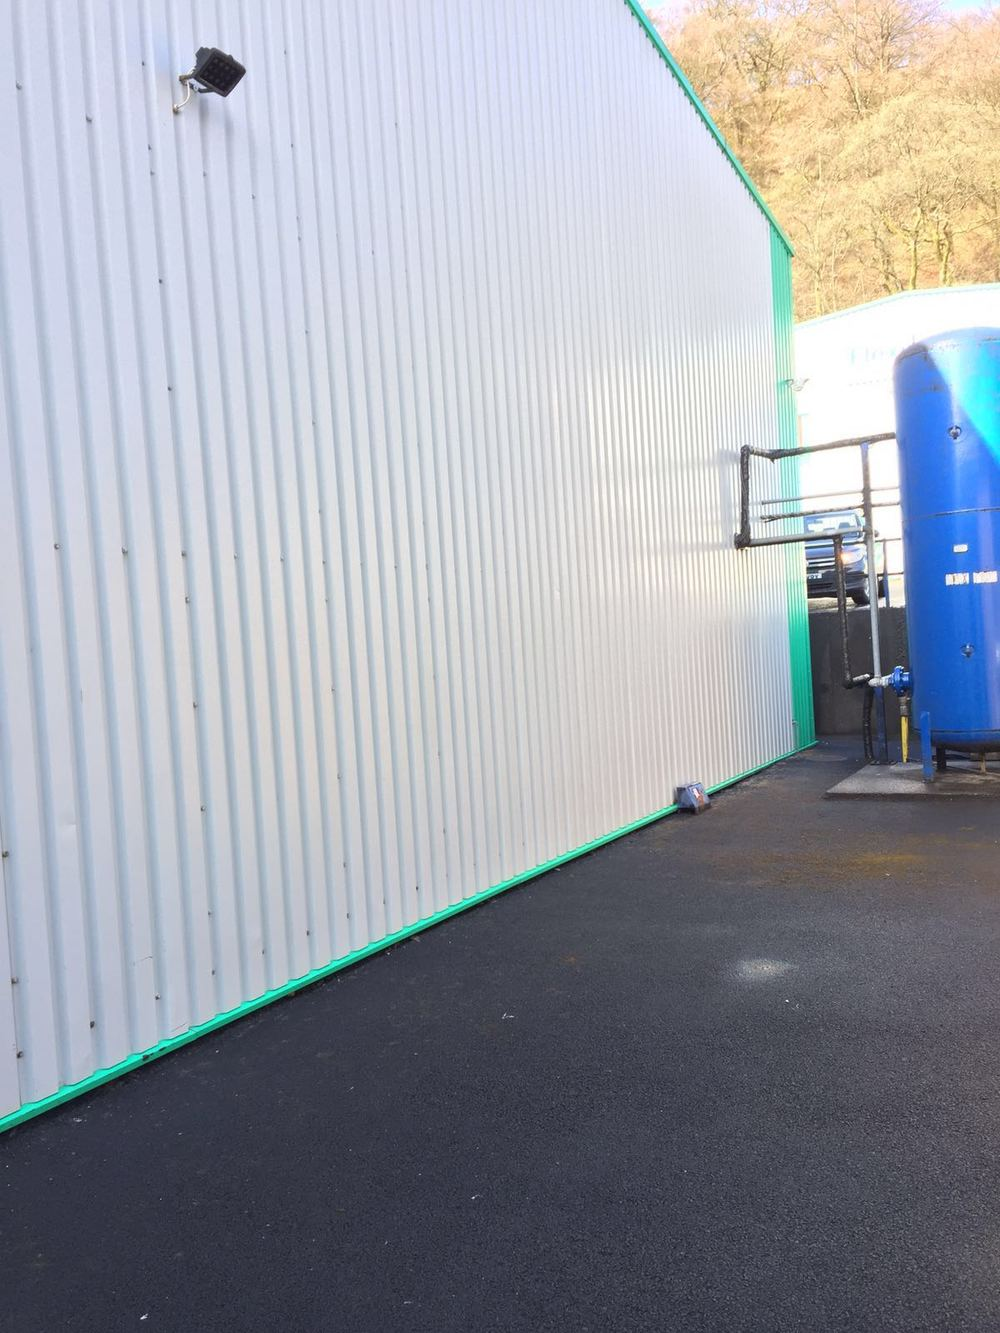 Commercial cladding Softwash treatment at a company in Helmshore, Lancashire. After Softwash.